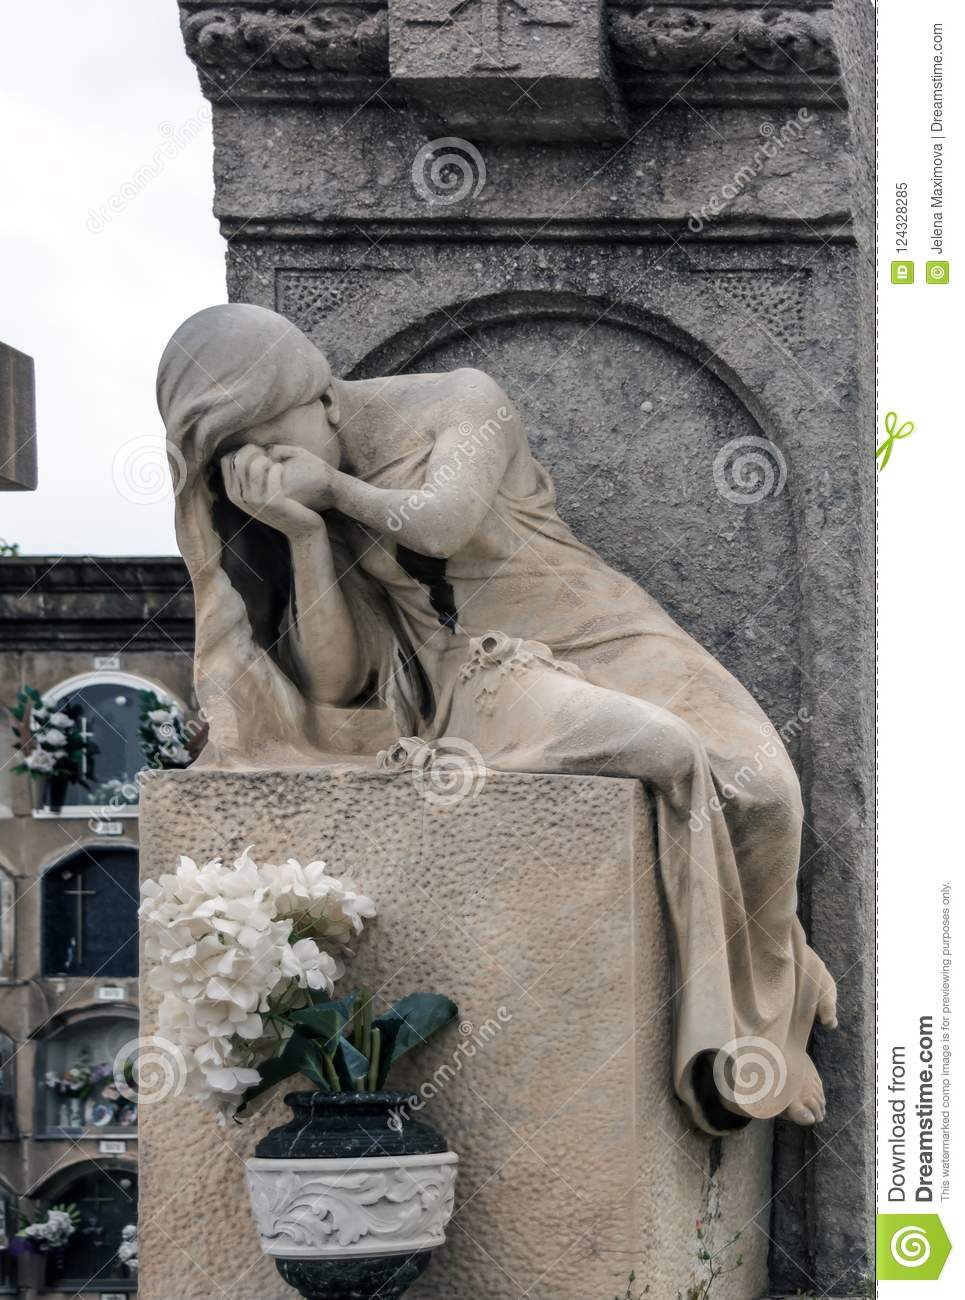 Sculpture of mourning crying woman on a grave